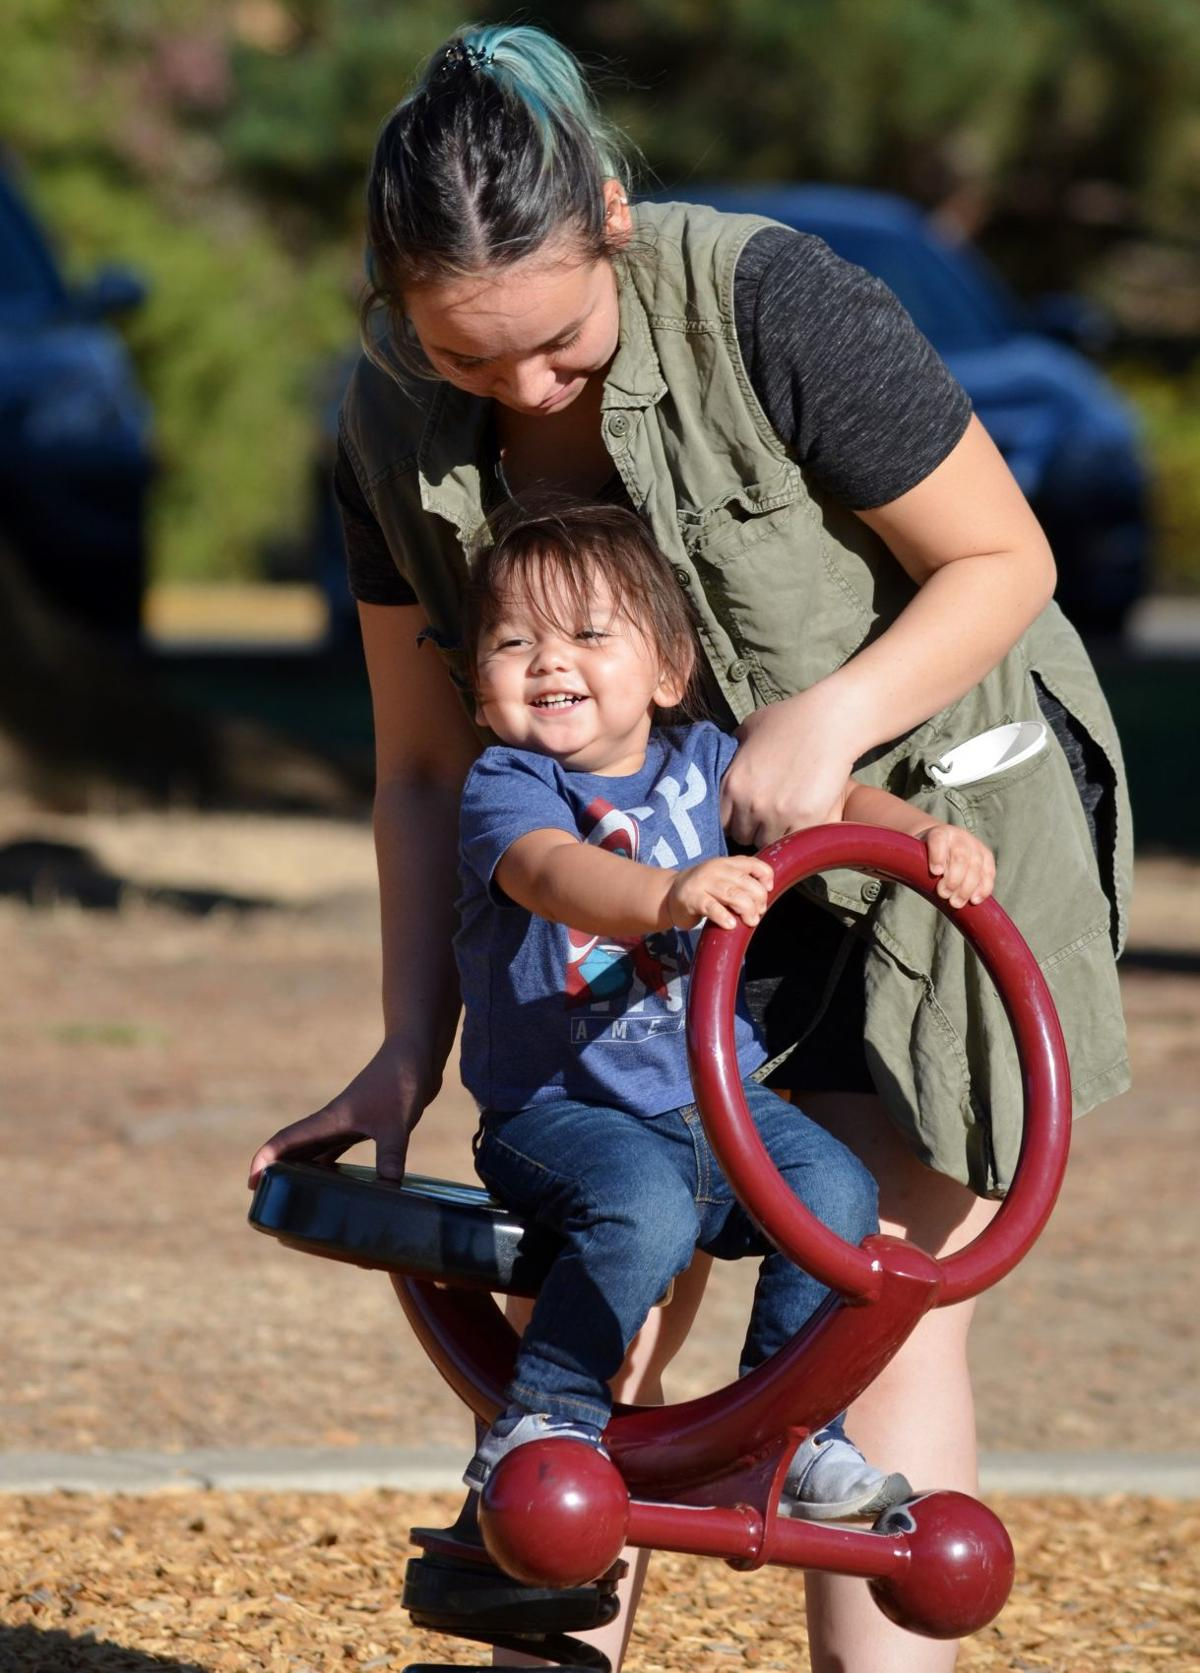 Danielle Stevens of Roseburg, top, pushes her 1 1/2-year-old son, Dominic, Tuesday afternoon at Stewart Park in Roseburg. Weather forecasts in Douglas County are calling for high temperatures in the low 90s, and unseasonably warm temp for late September.